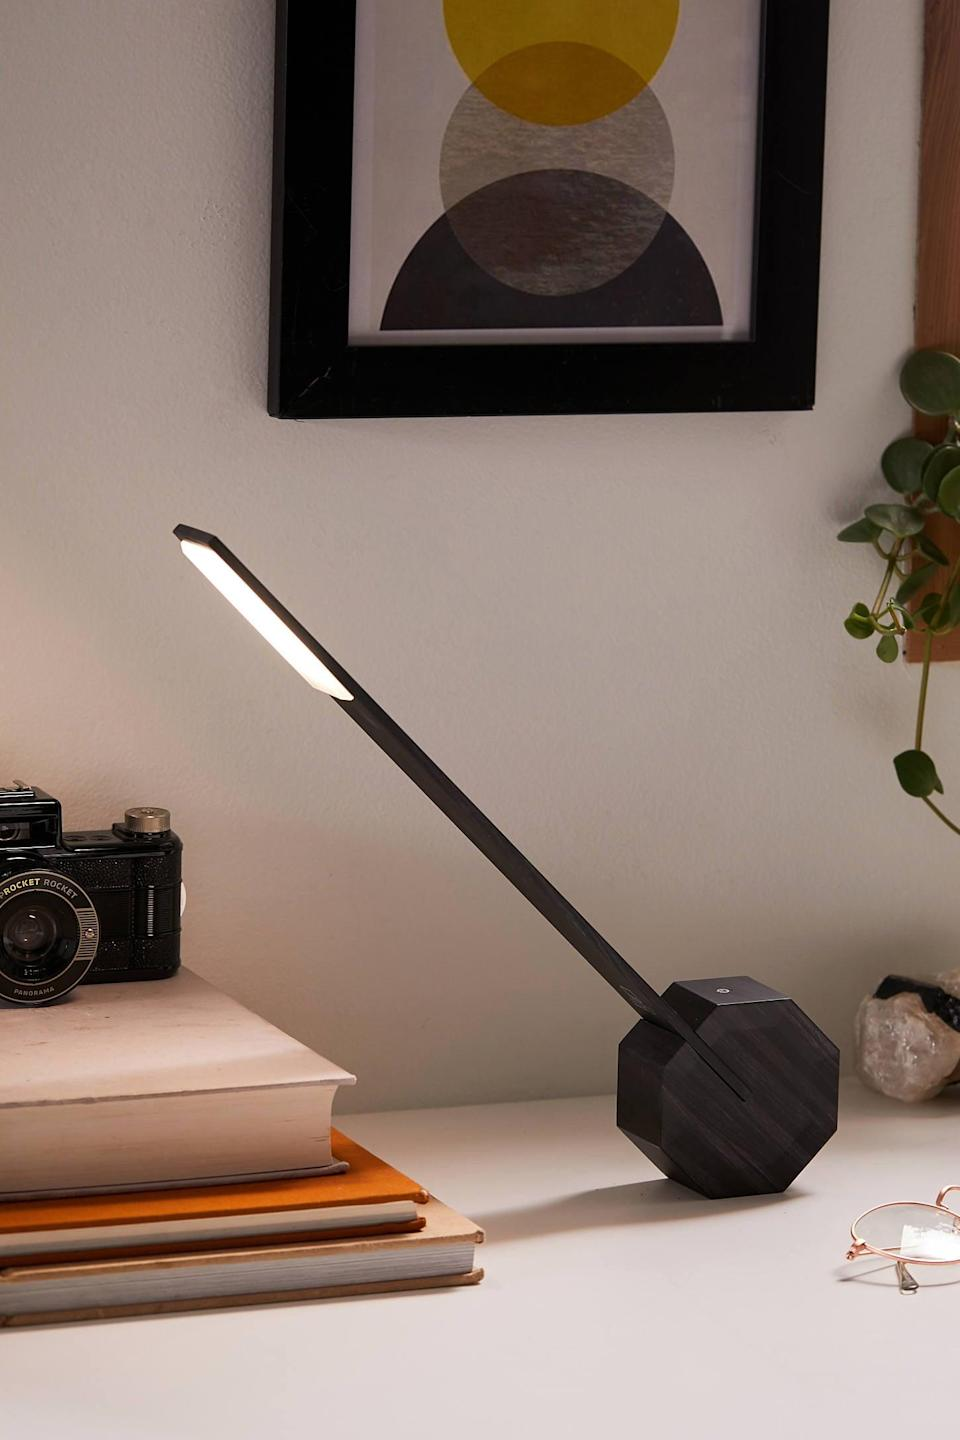 """<p>Wireless with a modern design, you can't go wrong with the <a href=""""https://www.popsugar.com/buy/Gingko-Octagon-One-Desk-Lamp-545916?p_name=Gingko%20Octagon%20One%20Desk%20Lamp&retailer=urbanoutfitters.com&pid=545916&price=79&evar1=geek%3Aus&evar9=36026397&evar98=https%3A%2F%2Fwww.popsugar.com%2Ftech%2Fphoto-gallery%2F36026397%2Fimage%2F47175967%2FGingko-Octagon-One-Desk-Lamp&list1=gifts%2Cgift%20guide%2Cdigital%20life%2Ctech%20gifts%2Cgifts%20for%20men&prop13=api&pdata=1"""" class=""""link rapid-noclick-resp"""" rel=""""nofollow noopener"""" target=""""_blank"""" data-ylk=""""slk:Gingko Octagon One Desk Lamp"""">Gingko Octagon One Desk Lamp</a> ($79).</p>"""